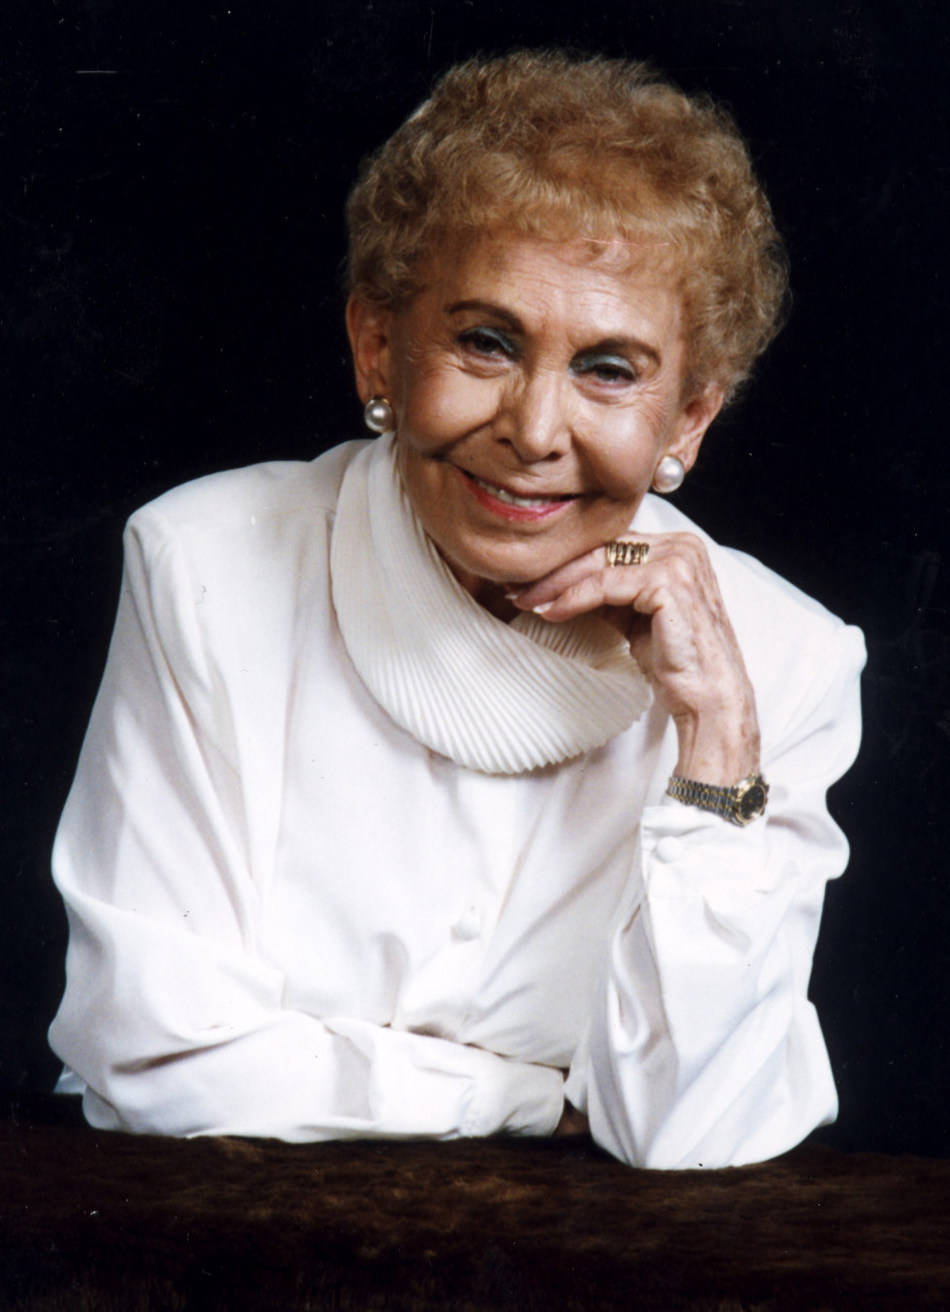 Molly Blank's contributions to National Jewish Health helped countless children receive medical care they needed.